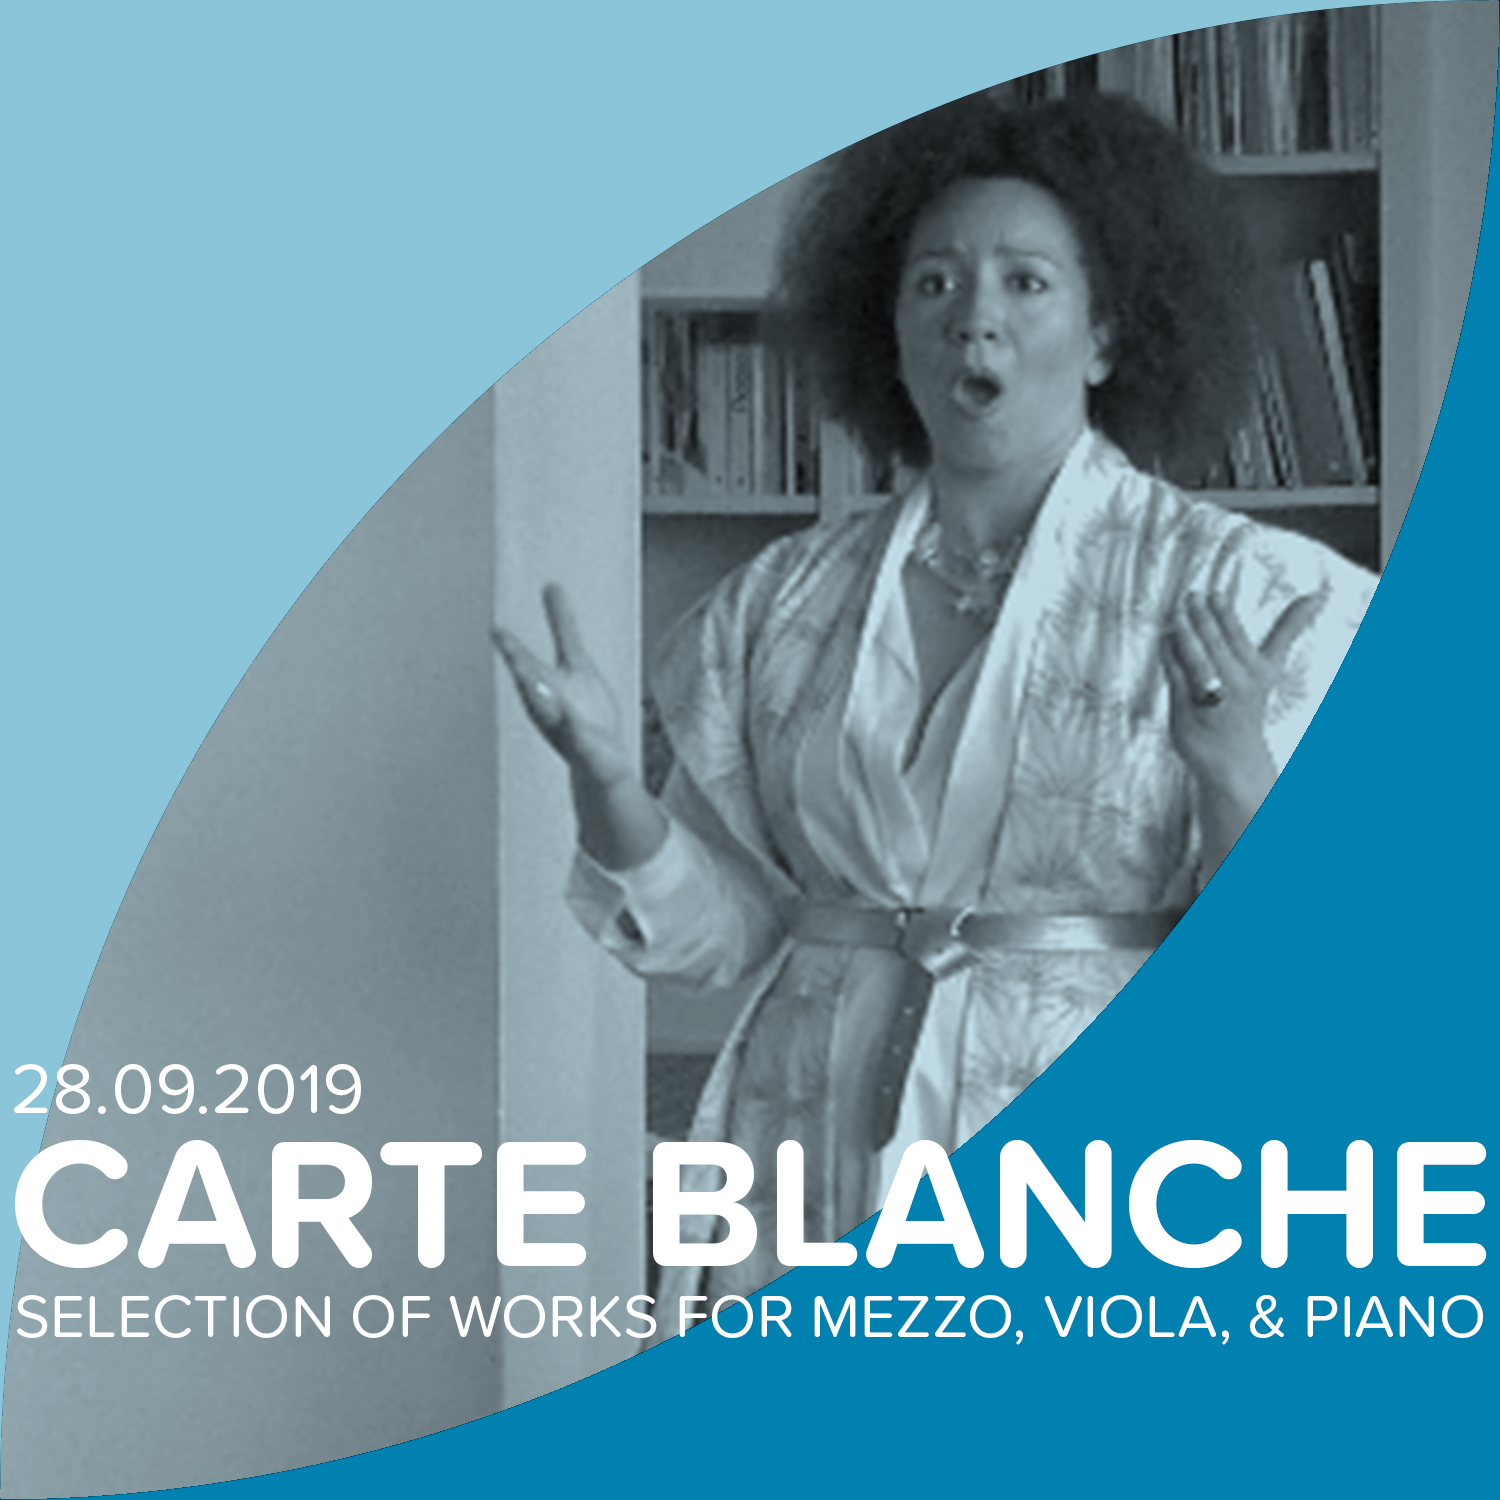 Christina Gill joins Kyle Collins and Ricardo Forcinito for Carte Blanche